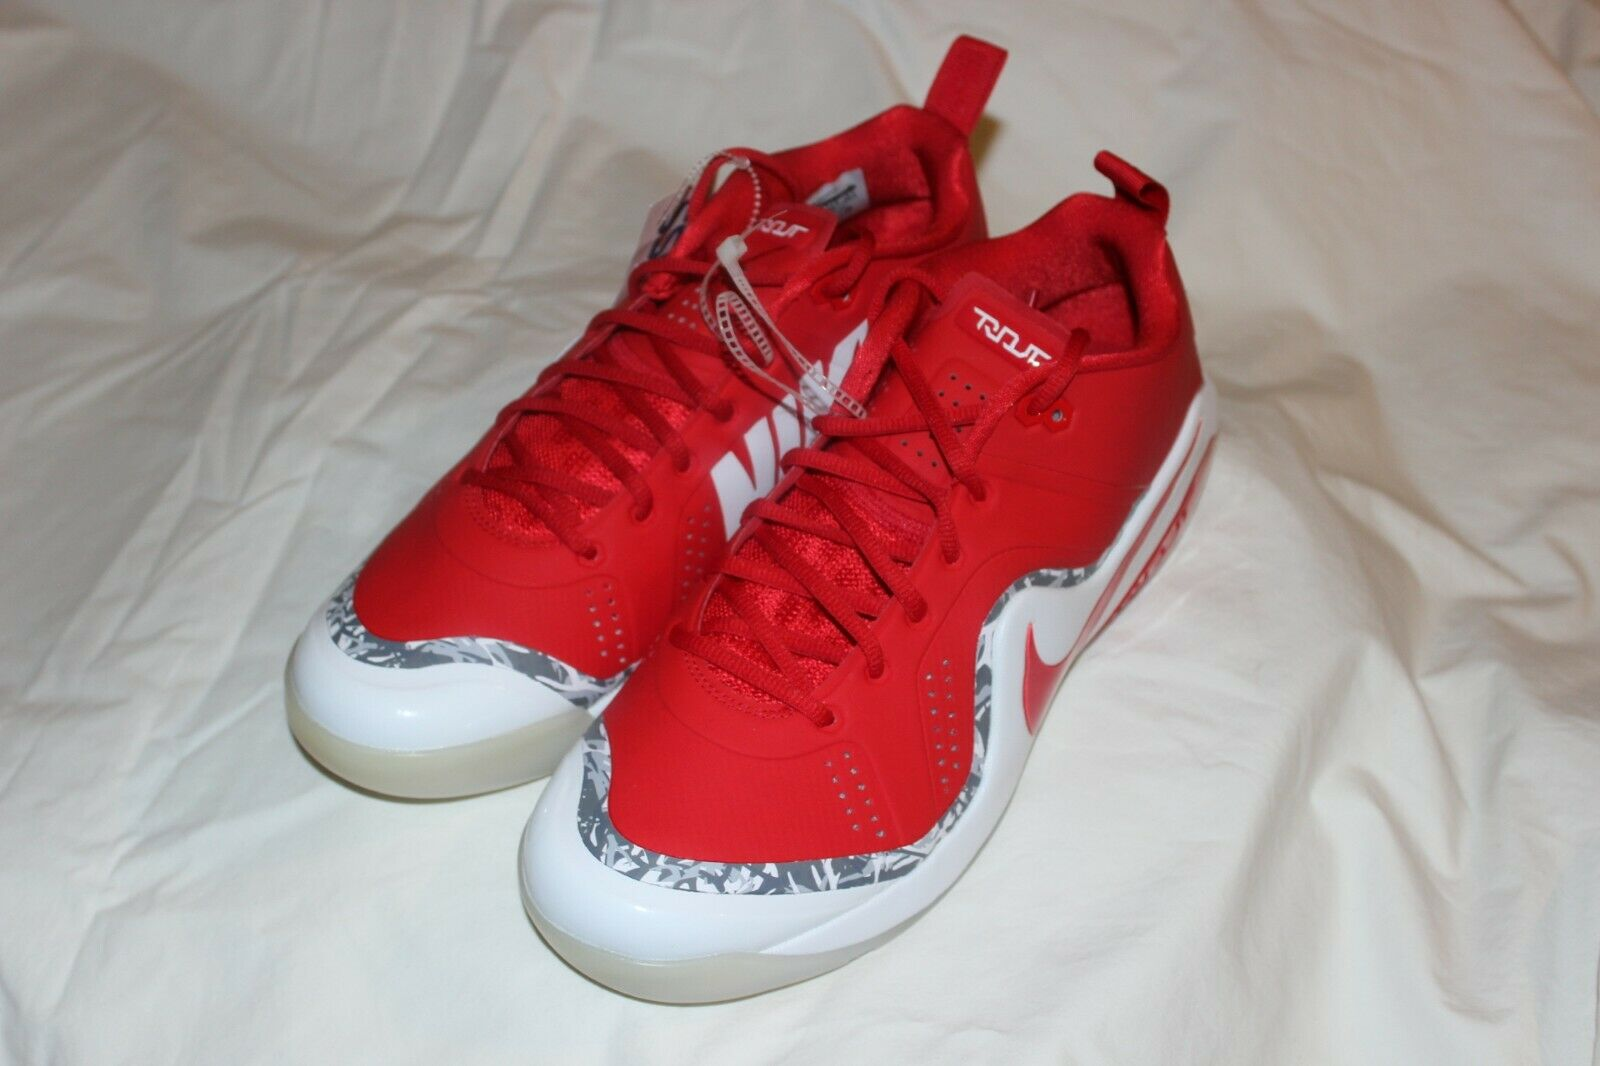 Nike Force Zoom Trout 4 Turf shoes Size 11.5